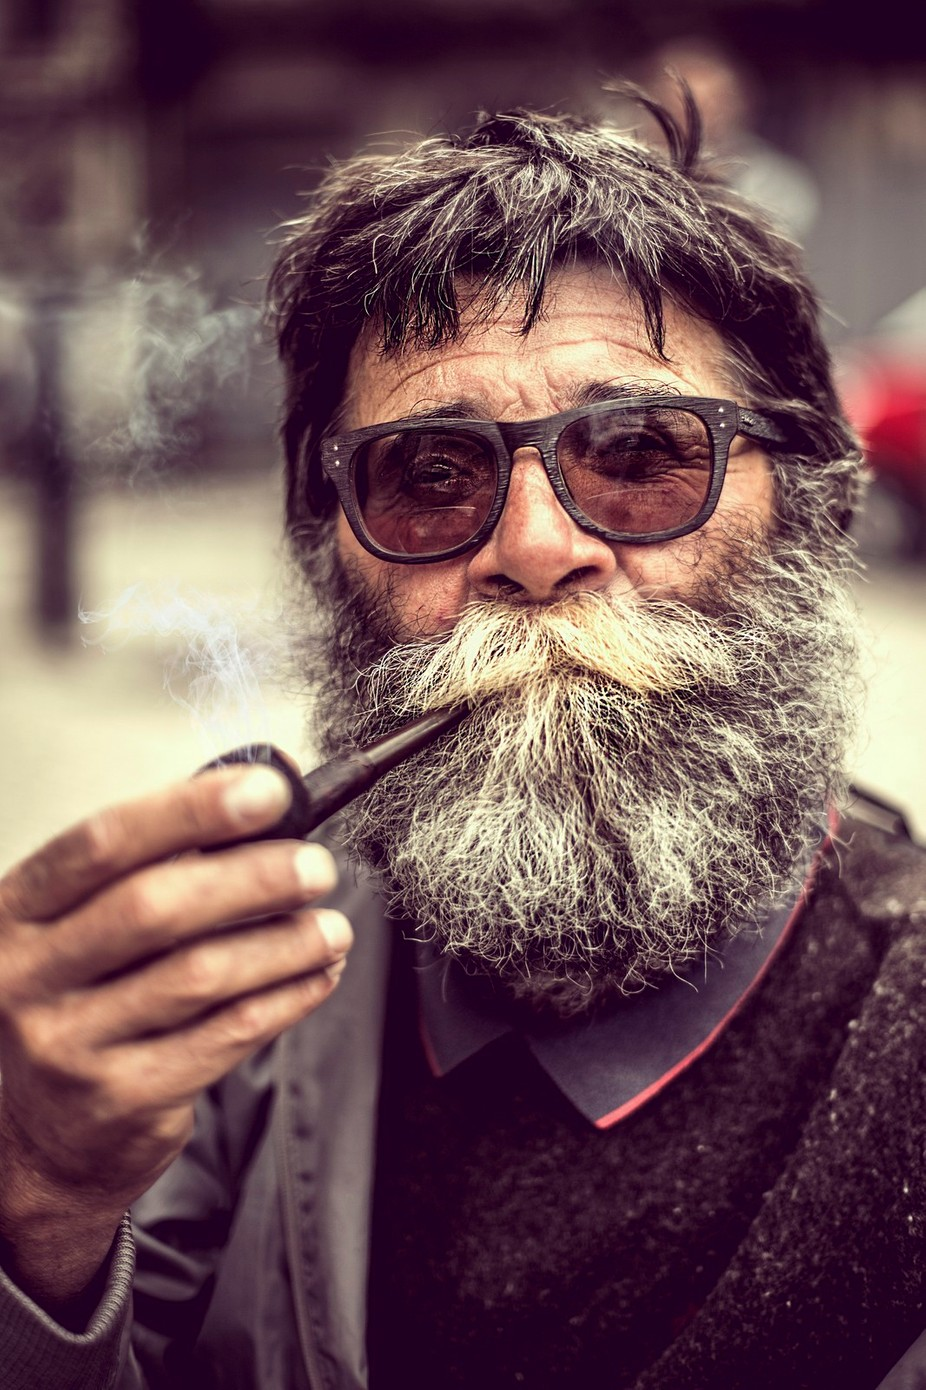 Beard Guy by pedropulido - Sunglasses Photo Contest 2017